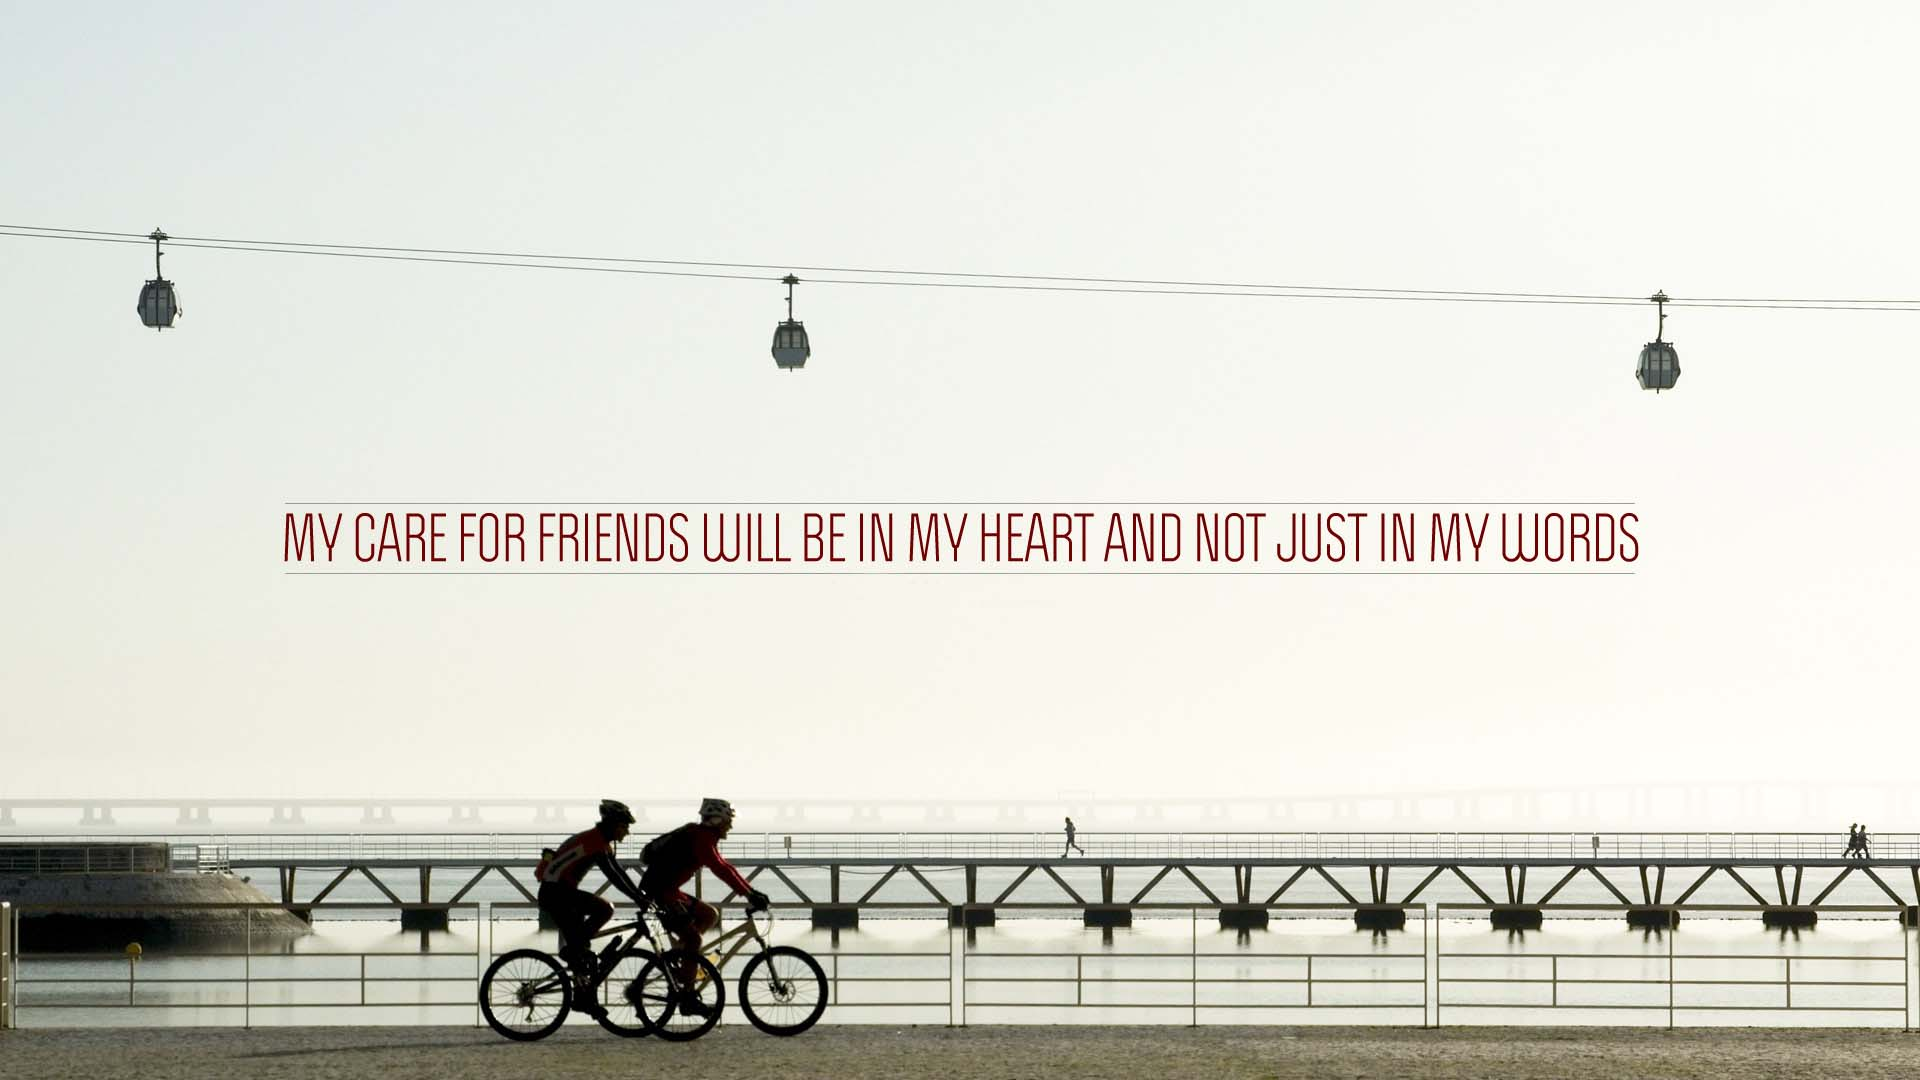 Friendship quotes wallpapers wallpaper cave friendship quotes hd images 2 friendship quotes hd images altavistaventures Image collections